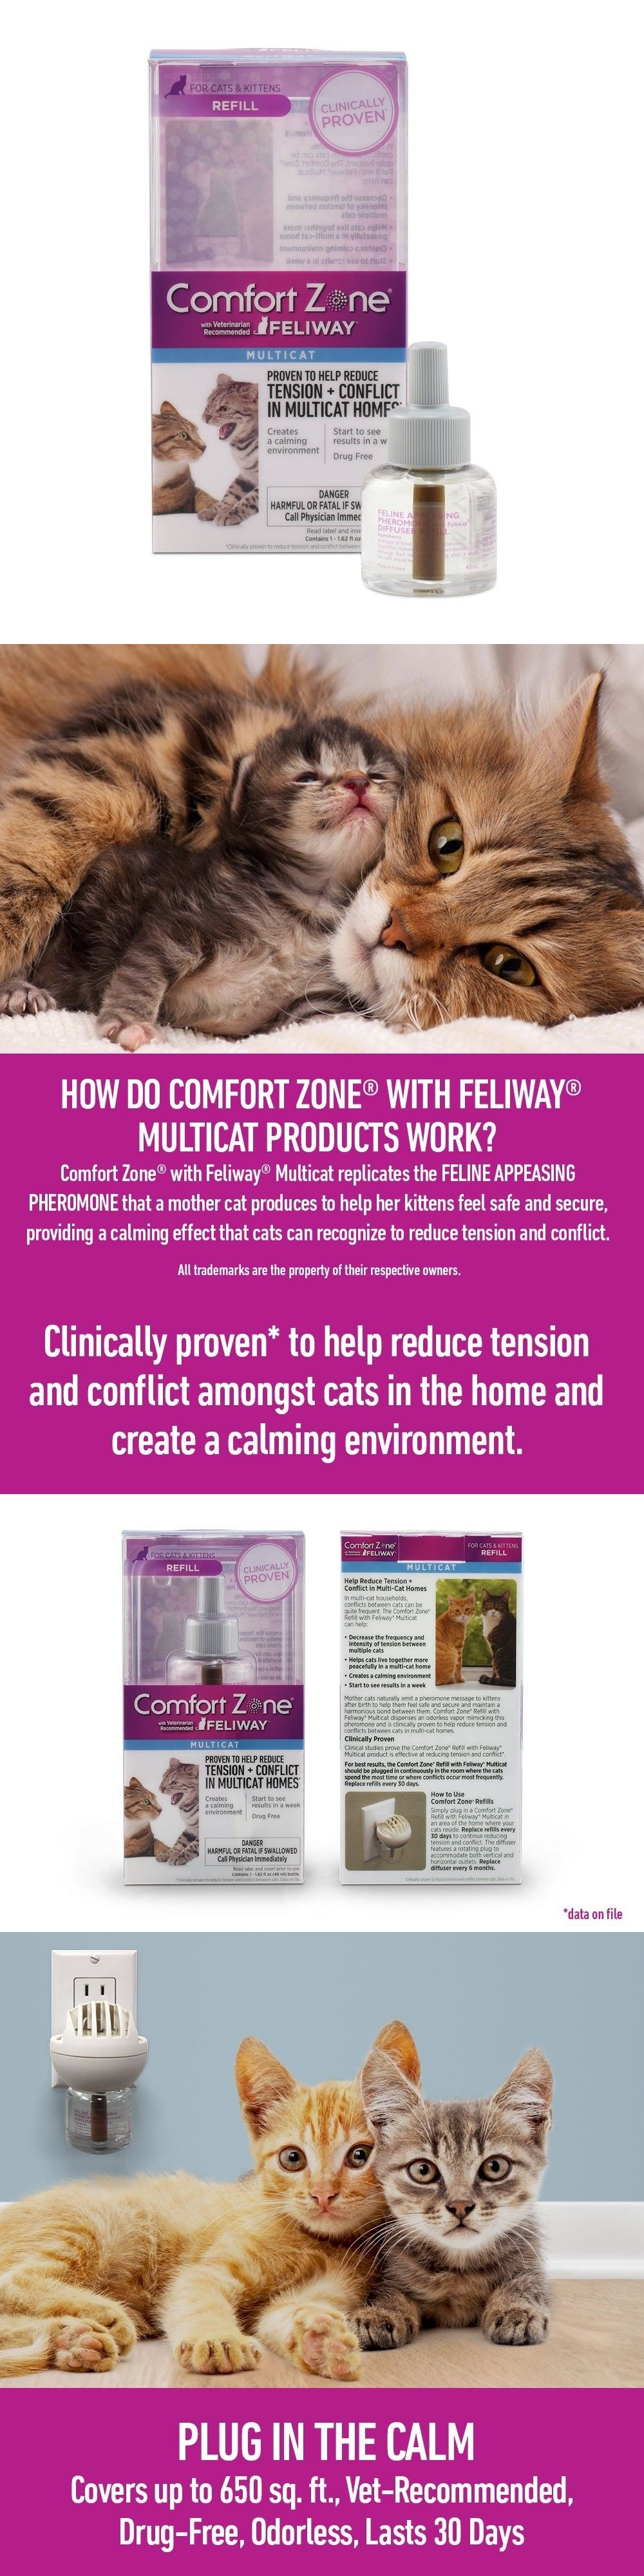 cat diffuser sprays comfort comforter collars chews wellness petco calming health zone shop diffusers petcostore en and composure feline bite aids pheromones center sized vetriscience category